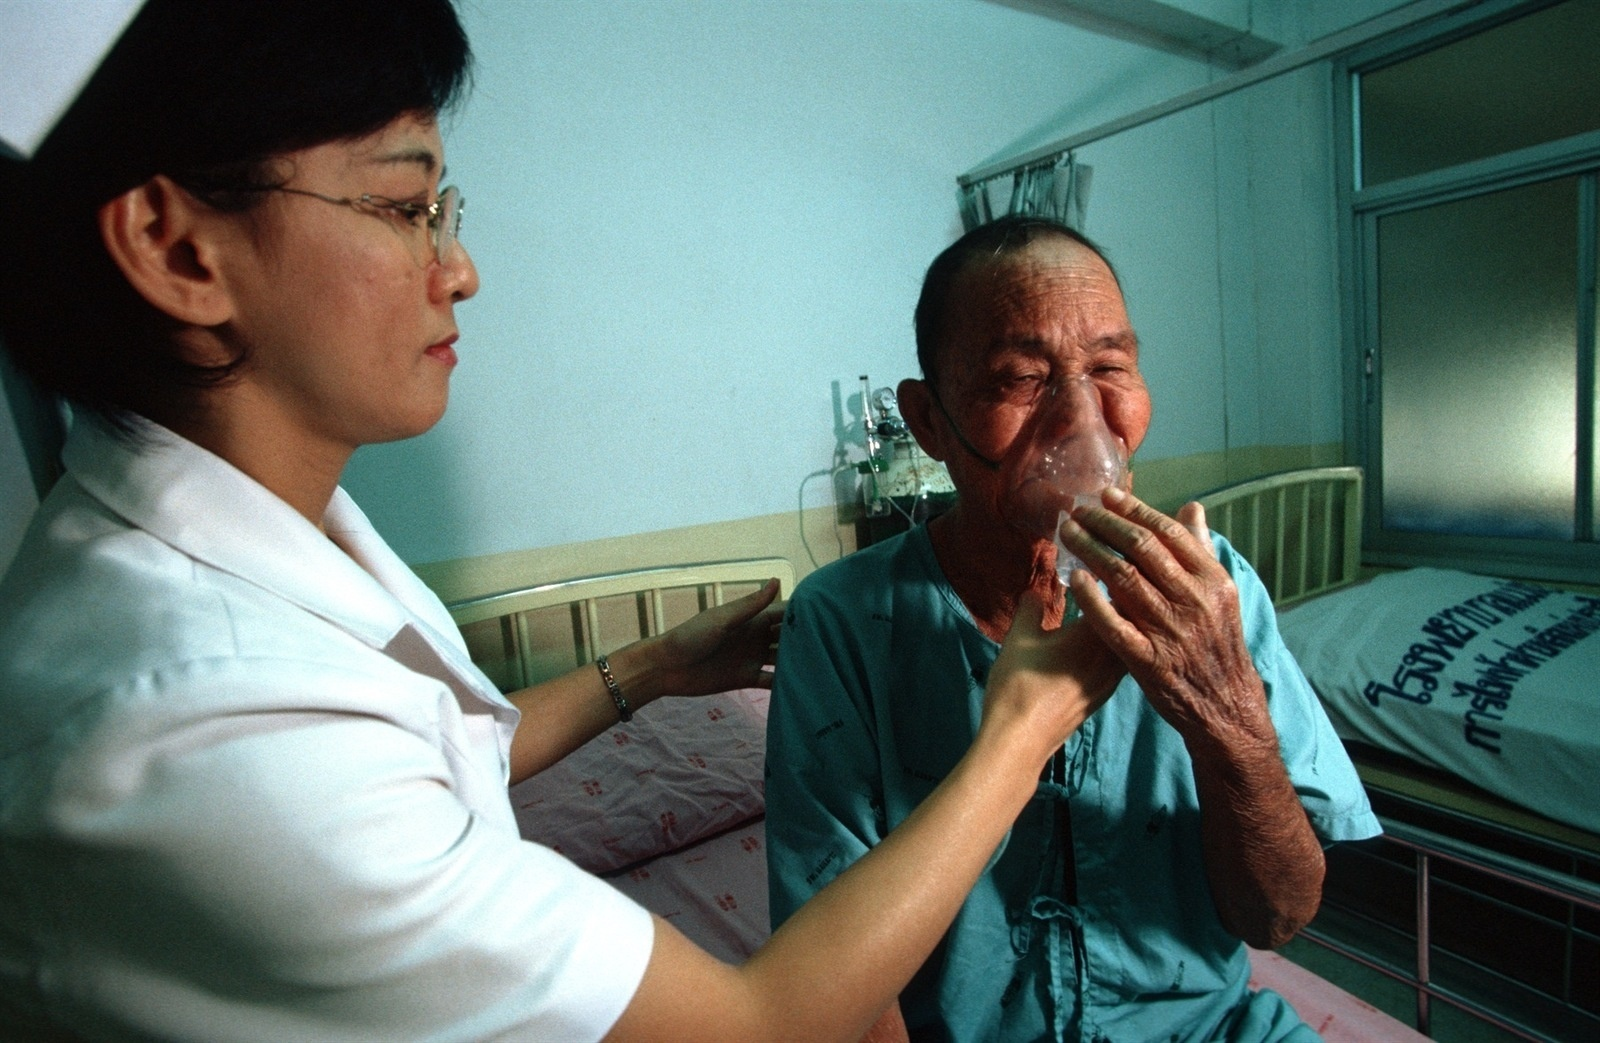 A nurse helps khun Khao Jaiwang, 68, breathe with the help of an oxygen tank at Mae Moh district hospital.  He has been diagnosed with Chronic Obstructive Pulmonary Disease. Environmental activists and villagers in the Mae Moh area believe that emissions from the Mae Moh power plant are the principal cause of respiratory disease in this area. An abnormal number of villagers in vicinity of the power plant are dying of respiratory related illnesses. Mae Moh district in northern Thailand's Lampang province is home to Southeast Asia's largest lignite fired power generating facility. Villagers in the area have long complained that the plant, which supplies north and northeast Thailand with power, is contaminating the surrounding area and poses a hazard to their health as well as damaging agricultural land.  The Mae Moh Power Plant, as it is known, began operations about 30 years ago and, despite being dogged by accusations of excessive pollution and evidence that locals are suffering respiratory problems as a result of burn-off from the plant, has continued to expand production.  Environmental activists in Thailand and elsewhere see the plant as an example of unclean power technology that should not be repeated in other countries. Proponents of coal and lignite plants say it offers cost effective energy with relatively little impact on the environment.